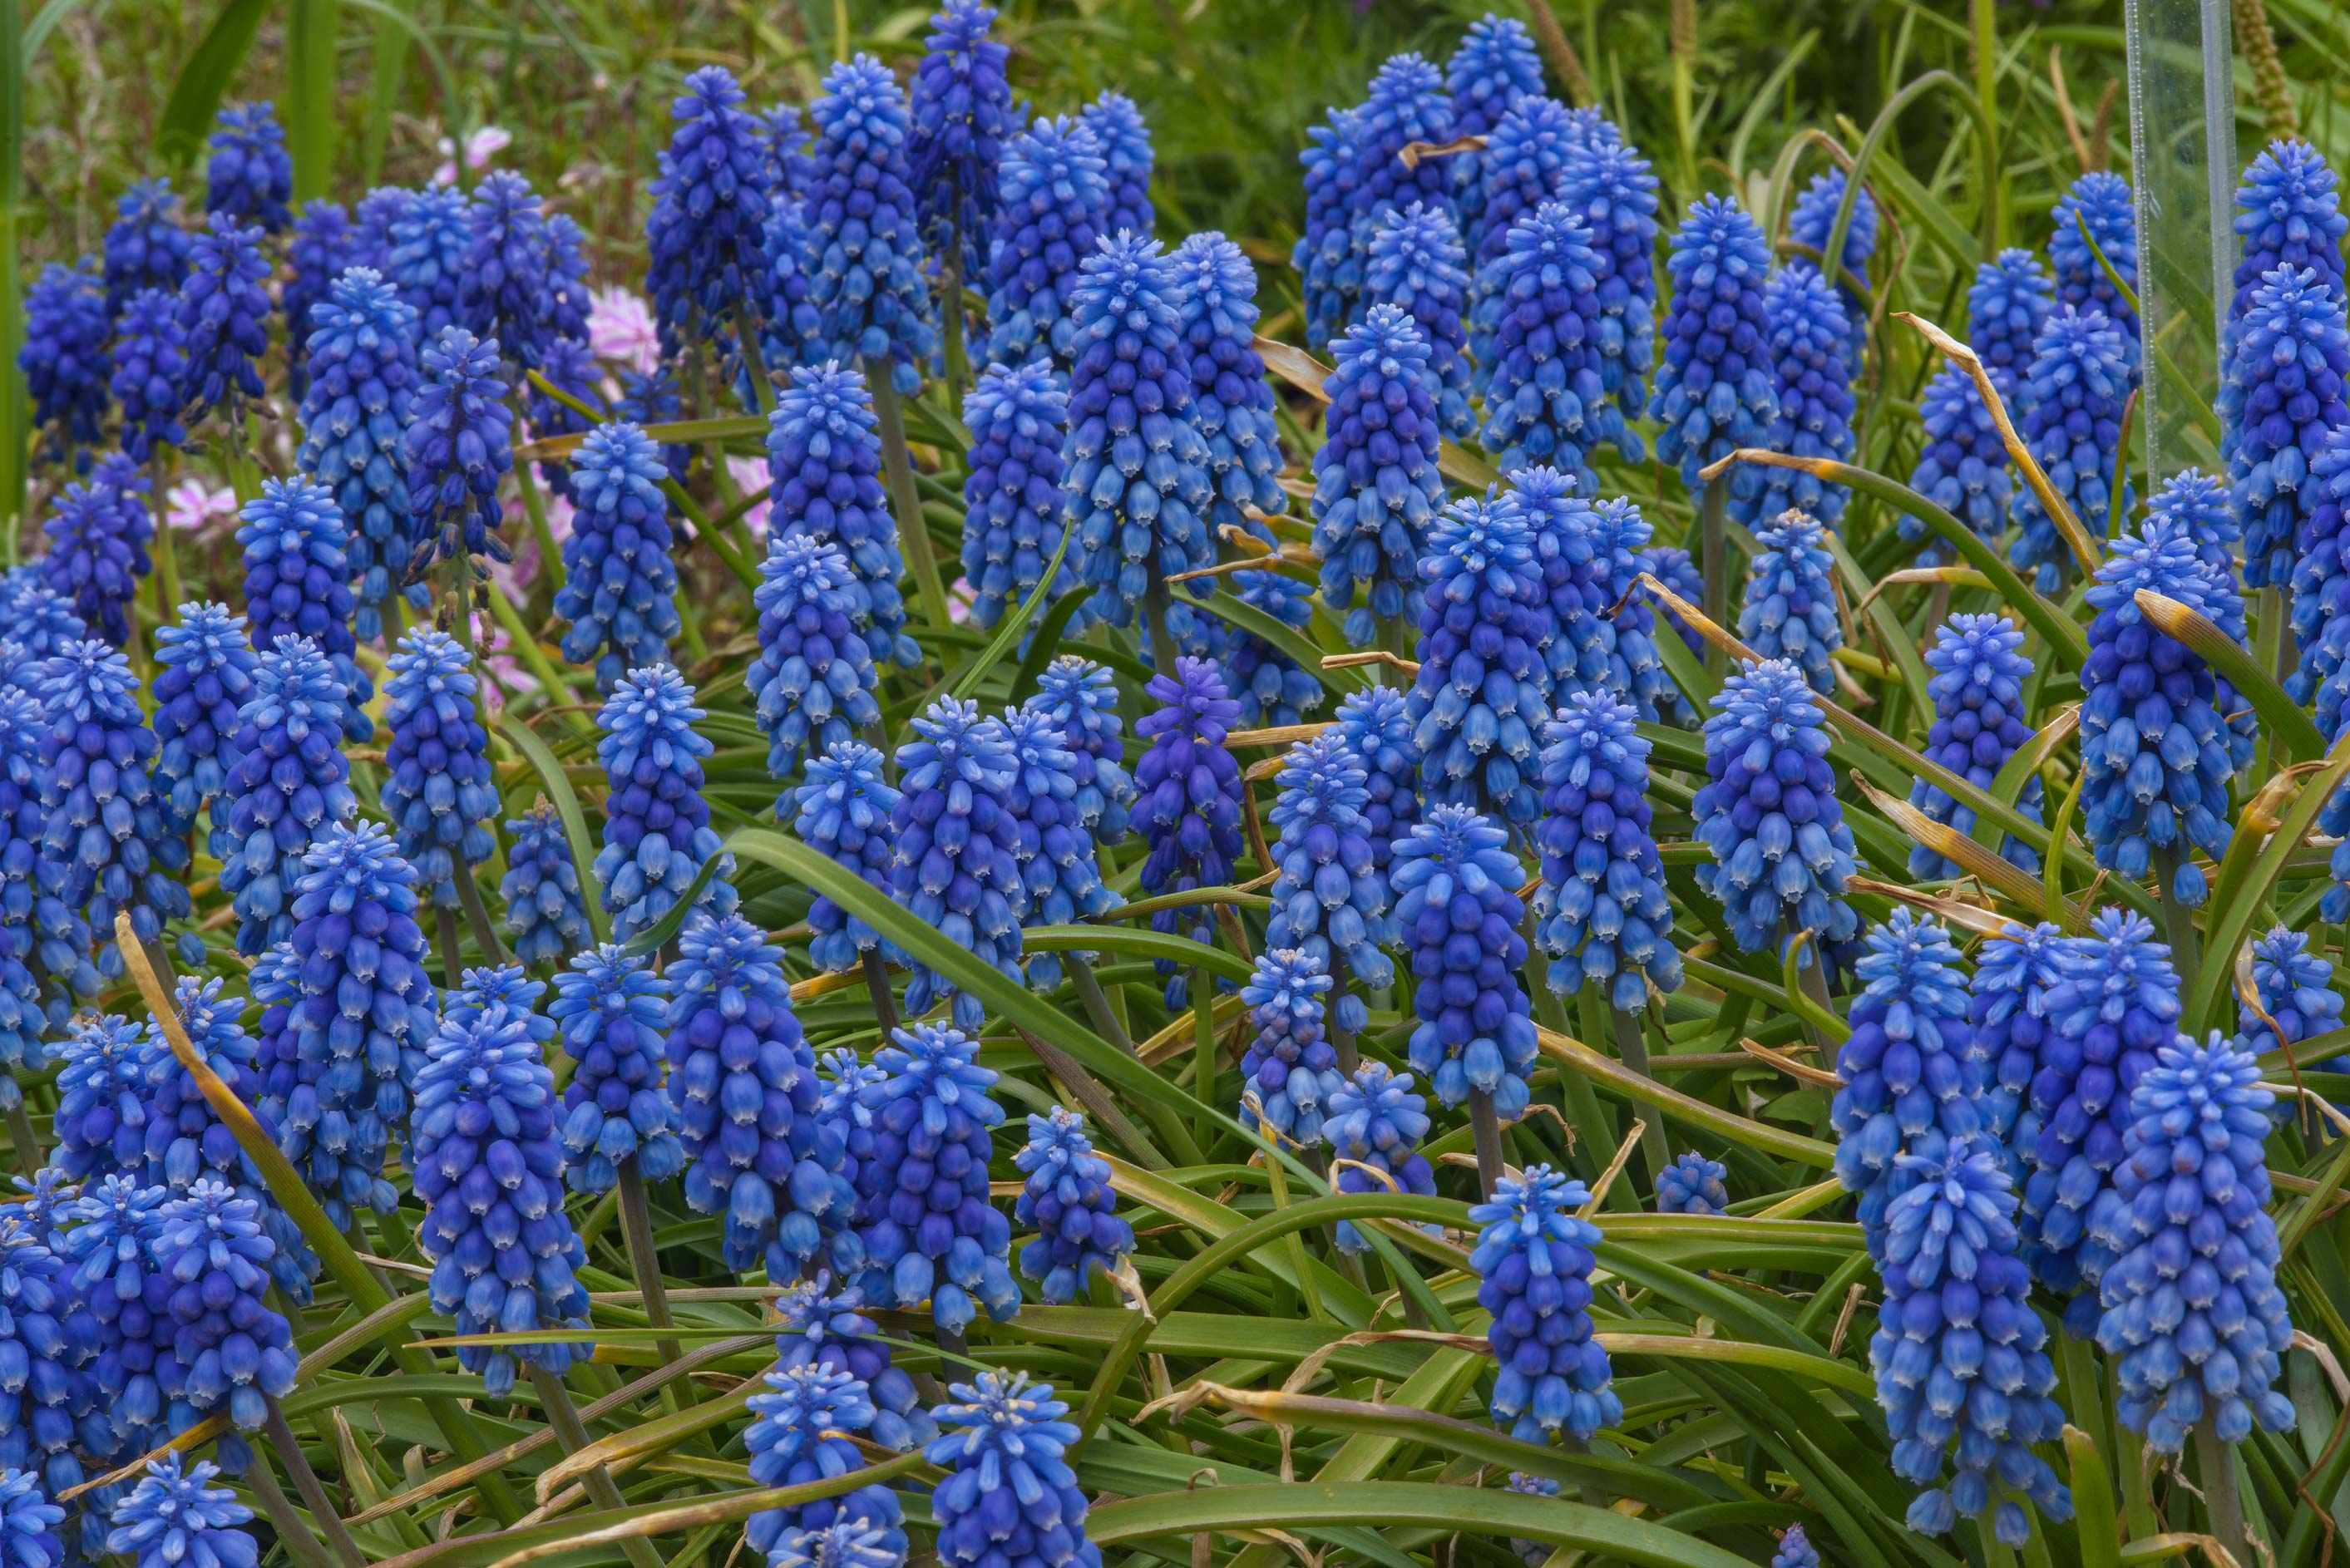 Flowers of grape hyacinth (Muscari) in Botanic...Institute. St.Petersburg, Russia